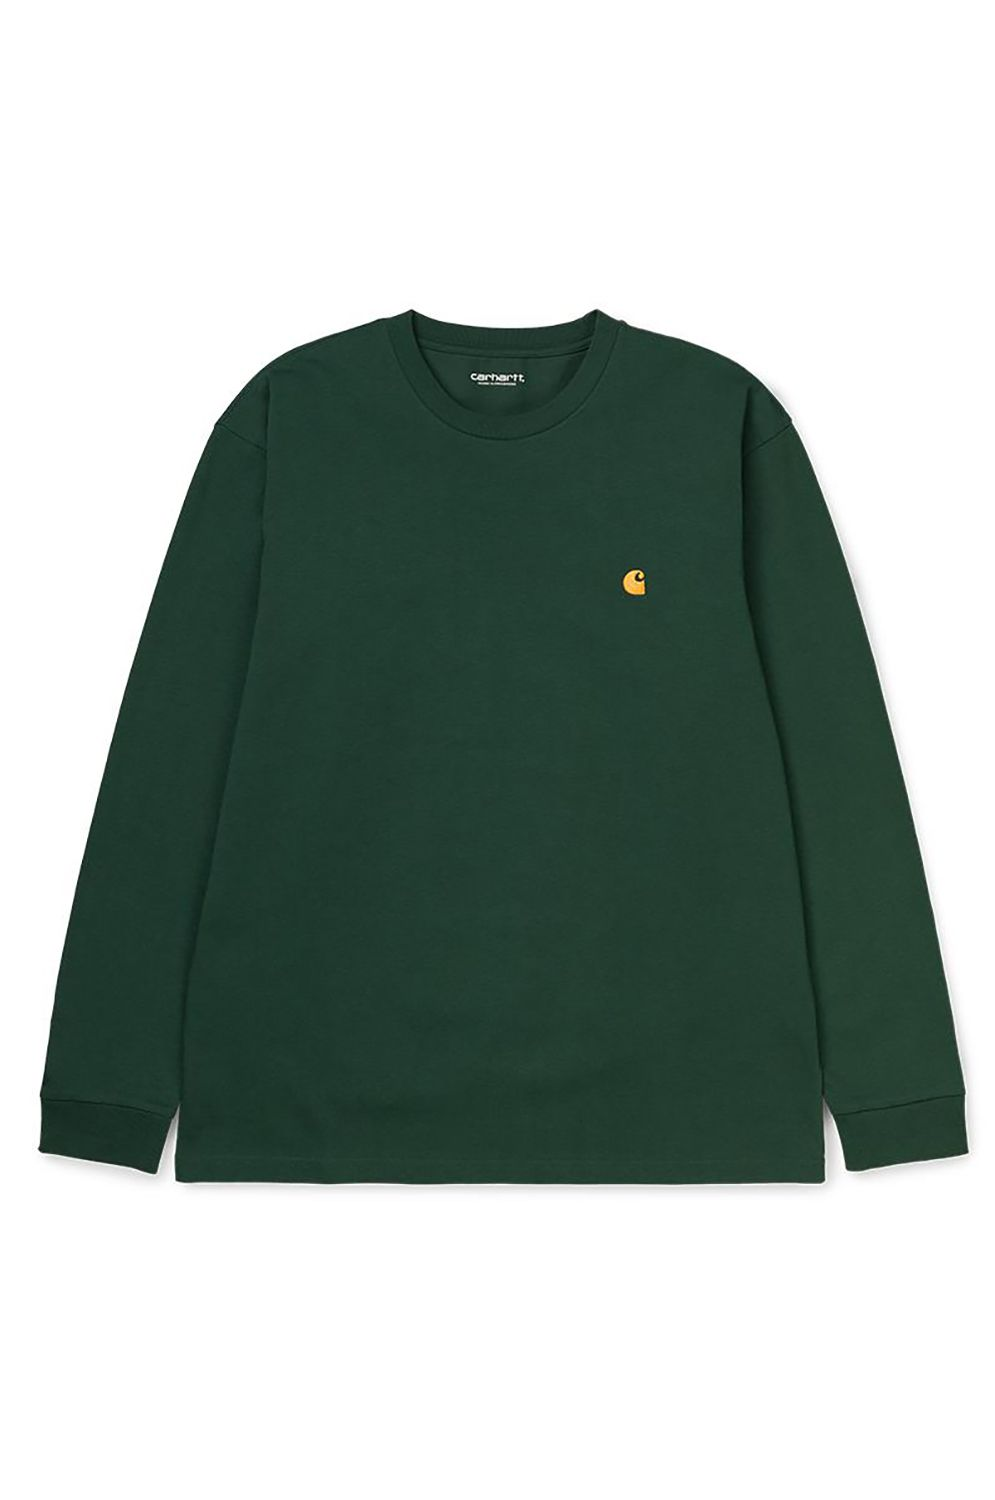 L-Sleeve Carhartt WIP L/S CHASE T-SHIRT Bottle Green/Gold